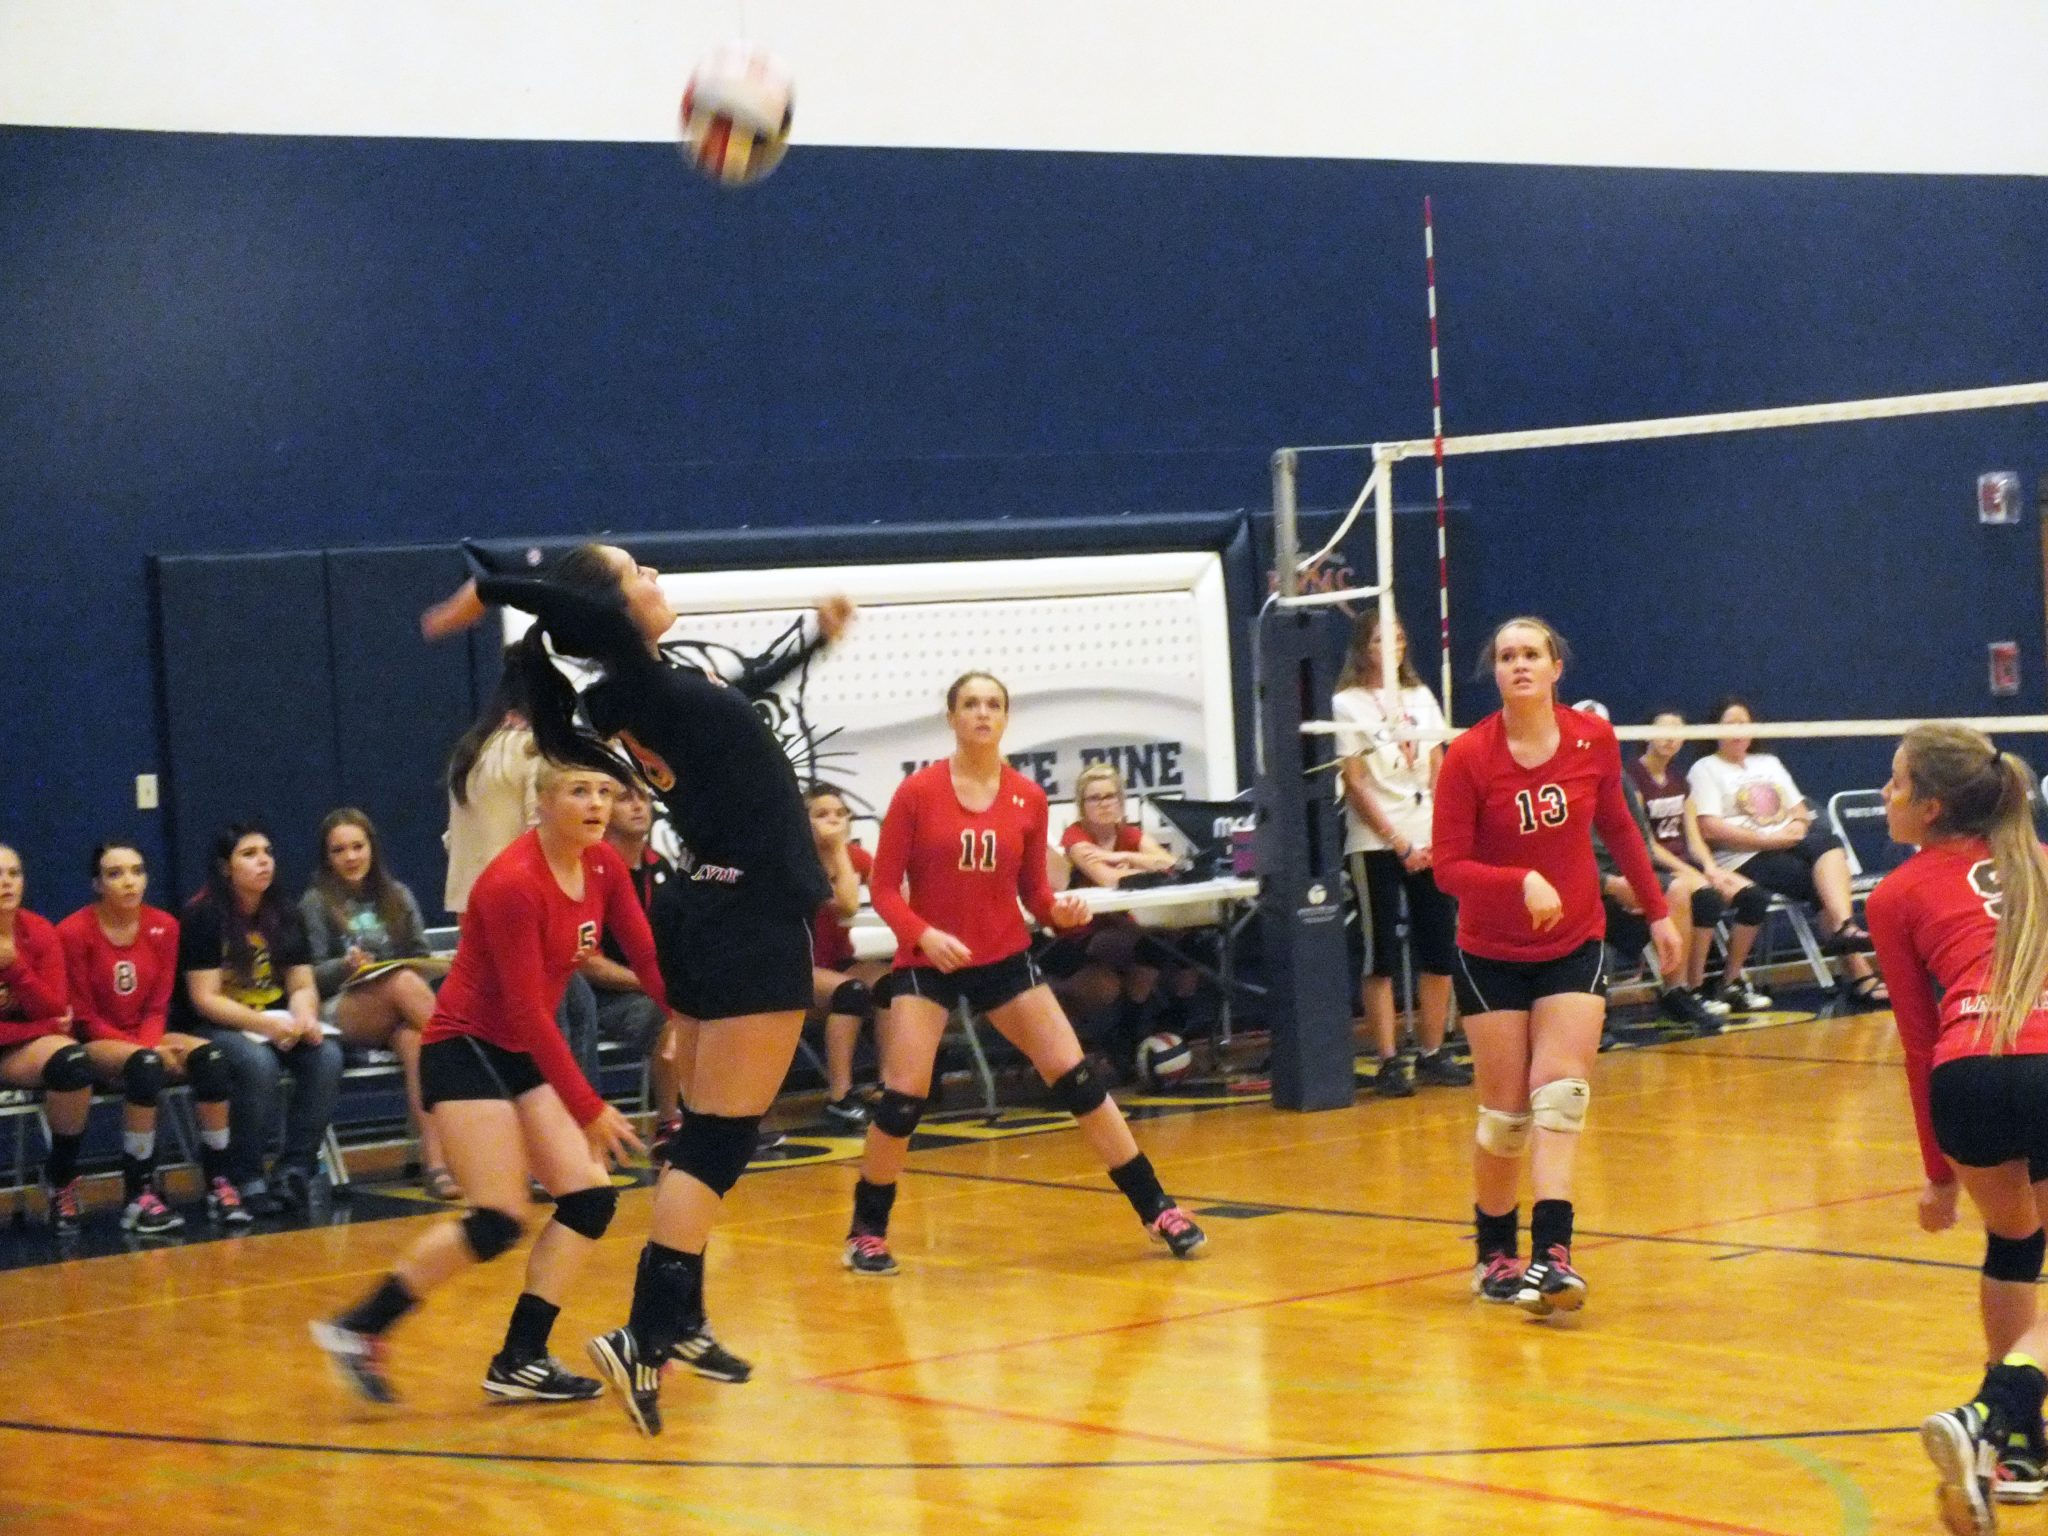 Lady Lynx take second in White Pine tournament